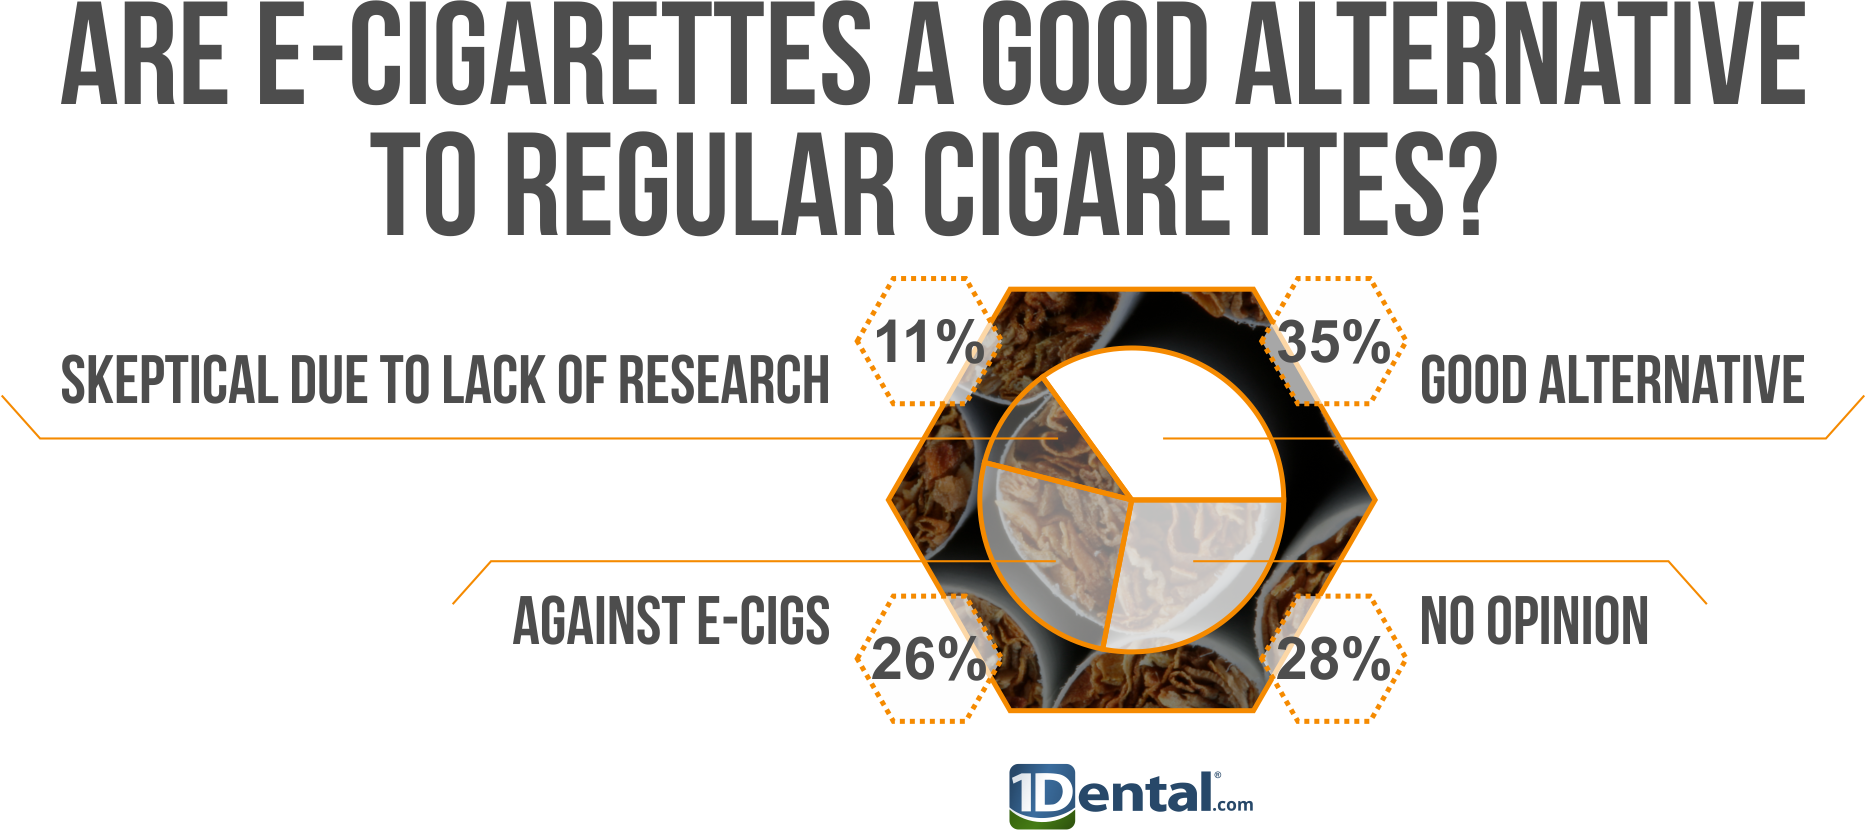 a personal opinion against smoking cigarettes Here's the current status of tobacco lawsuits against cigarette manufacturers grow your legal tobacco litigation: history & recent developments the tobacco companies failed to warn consumers of the risks of smoking cigarettes.